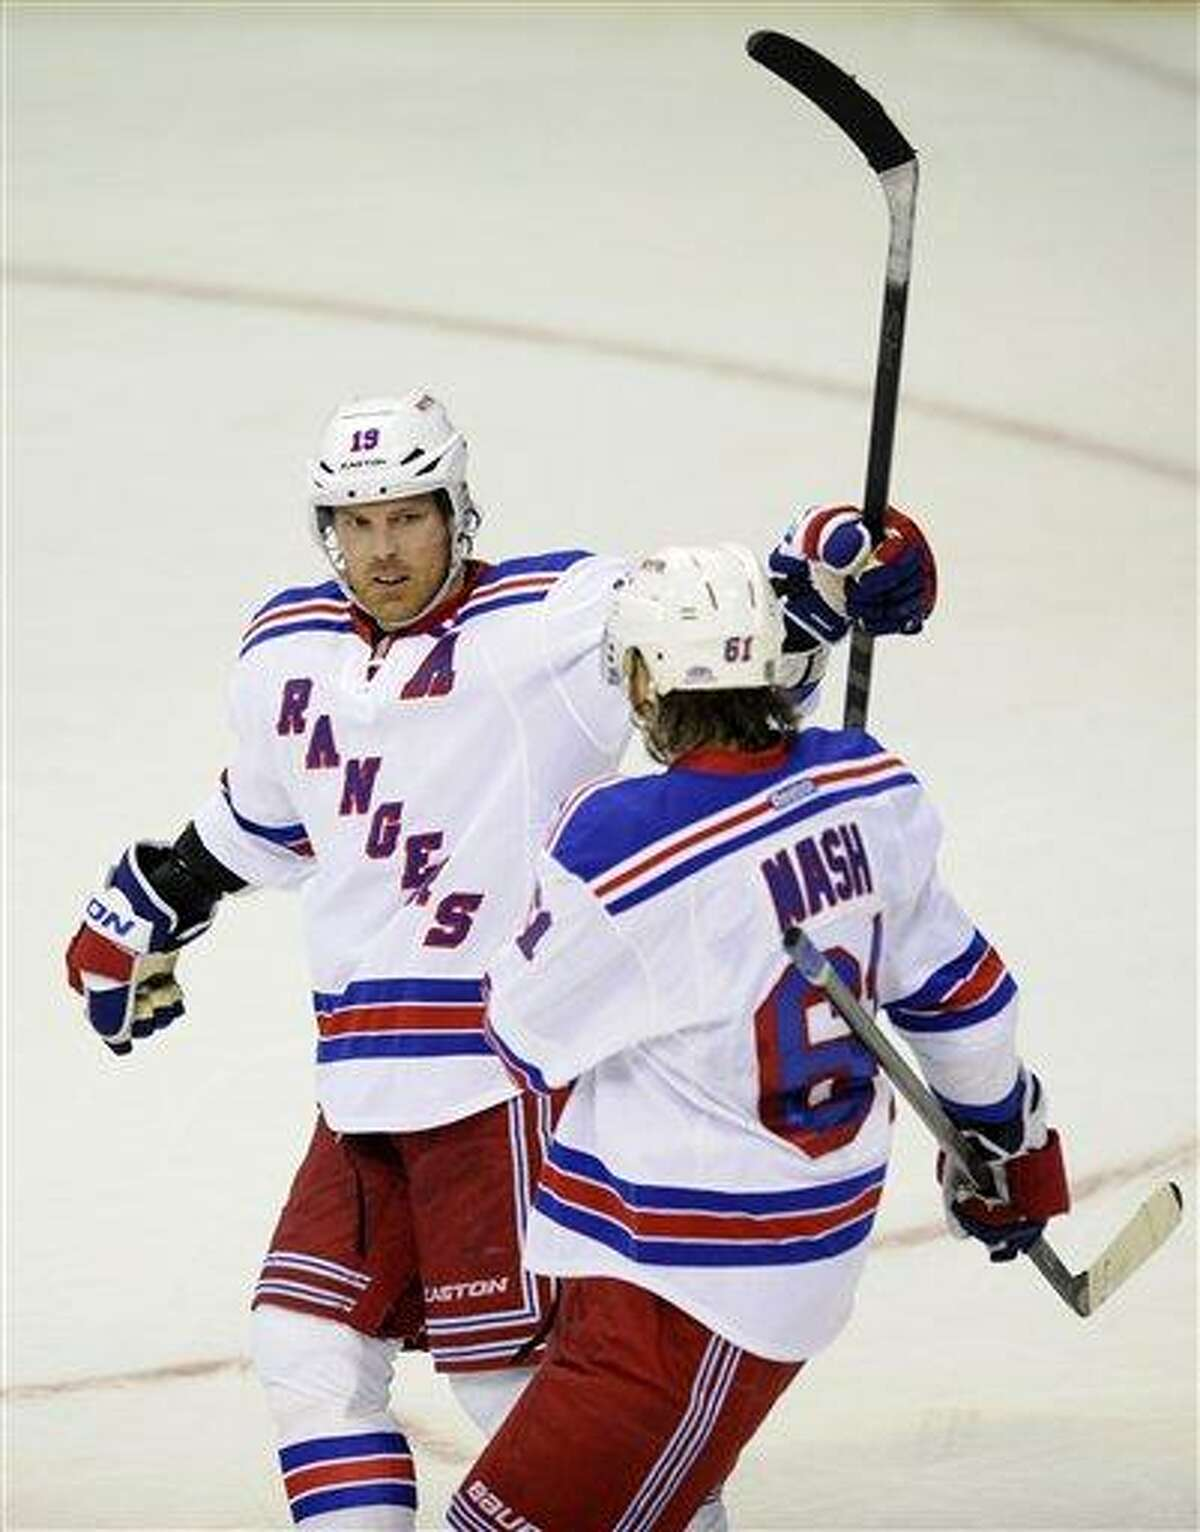 New York Rangers center Brad Richards (19) celebrates his goal with Rick Nash (61) against the Washington Capitals during the third period of an NHL hockey game Sunday March 10, 2013, in Washington. The Rangers won 4-1.(AP Photo/Nick Wass)